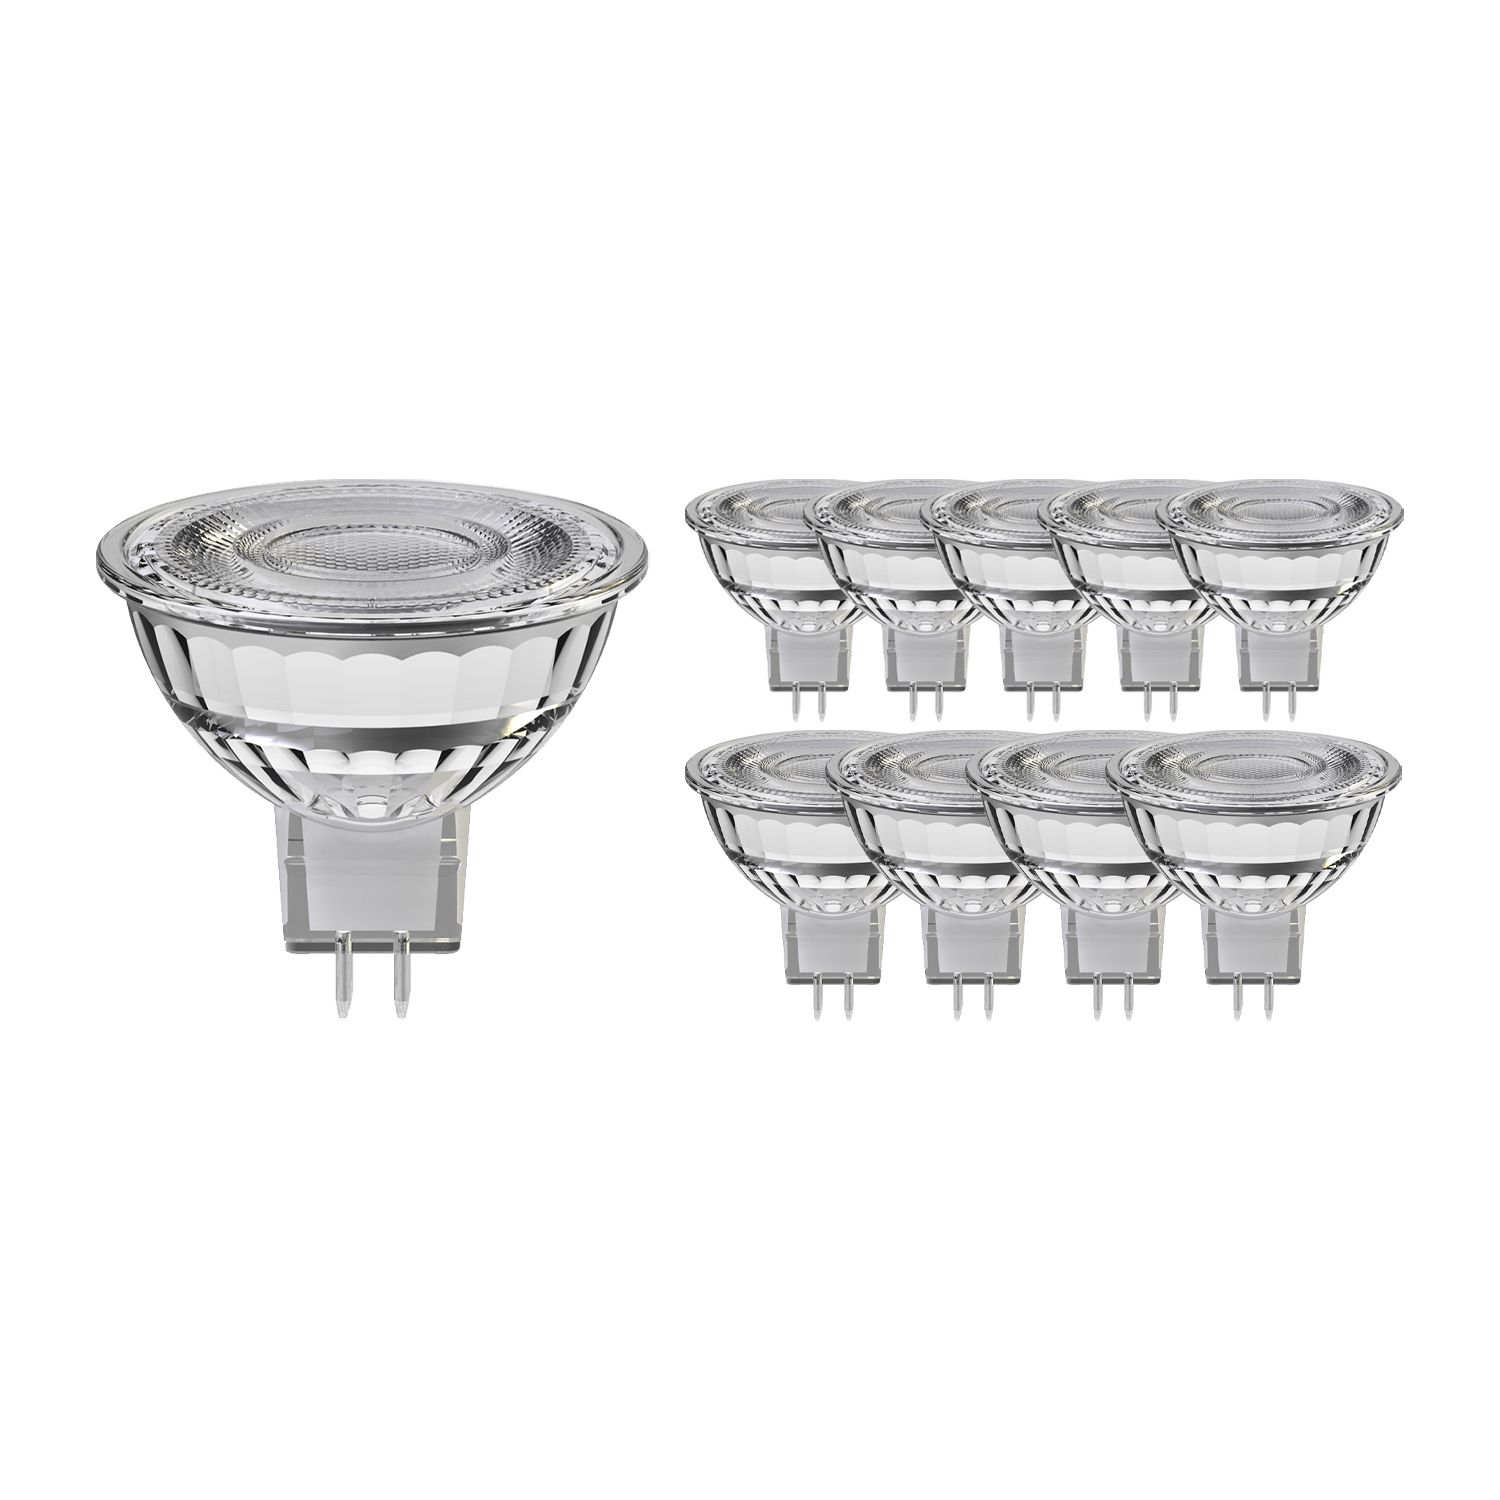 Lot 10x Noxion Spot LED GU5.3 8W 830 60D 660lm | Dimmable - Blanc Chaud - Substitut 50W